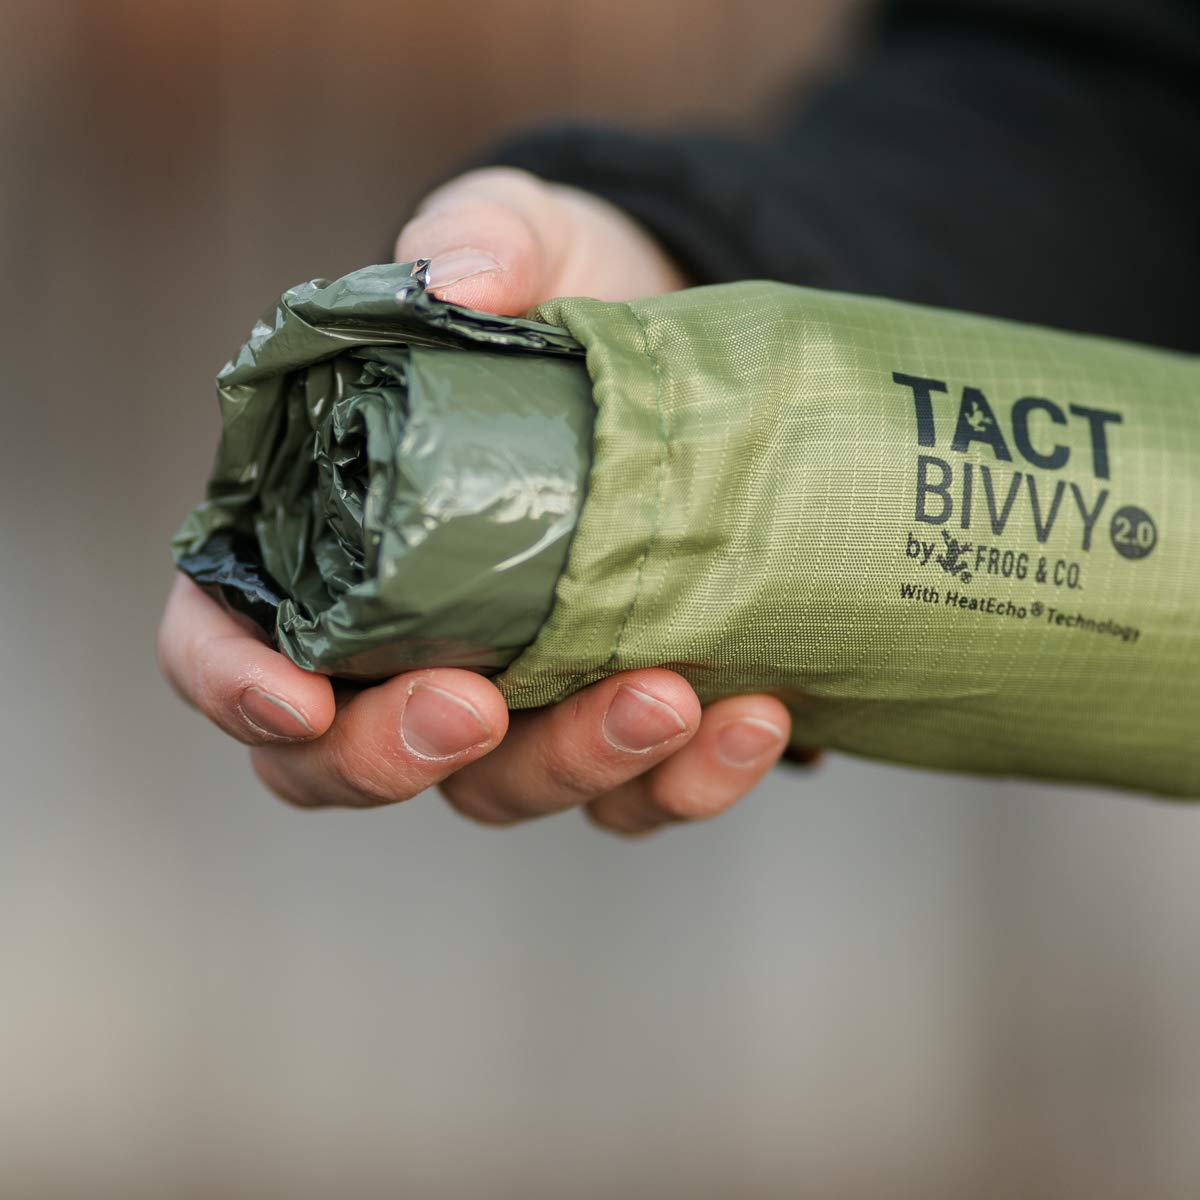 Tact Bivvy Compact Ultra Lightweight Sleeping Bag – 100% Waterproof Ultralight Thermal Bivy Sack Cover, Emergency Blanket Liner Bags for Emergency Shelter, Survival Gear Kit